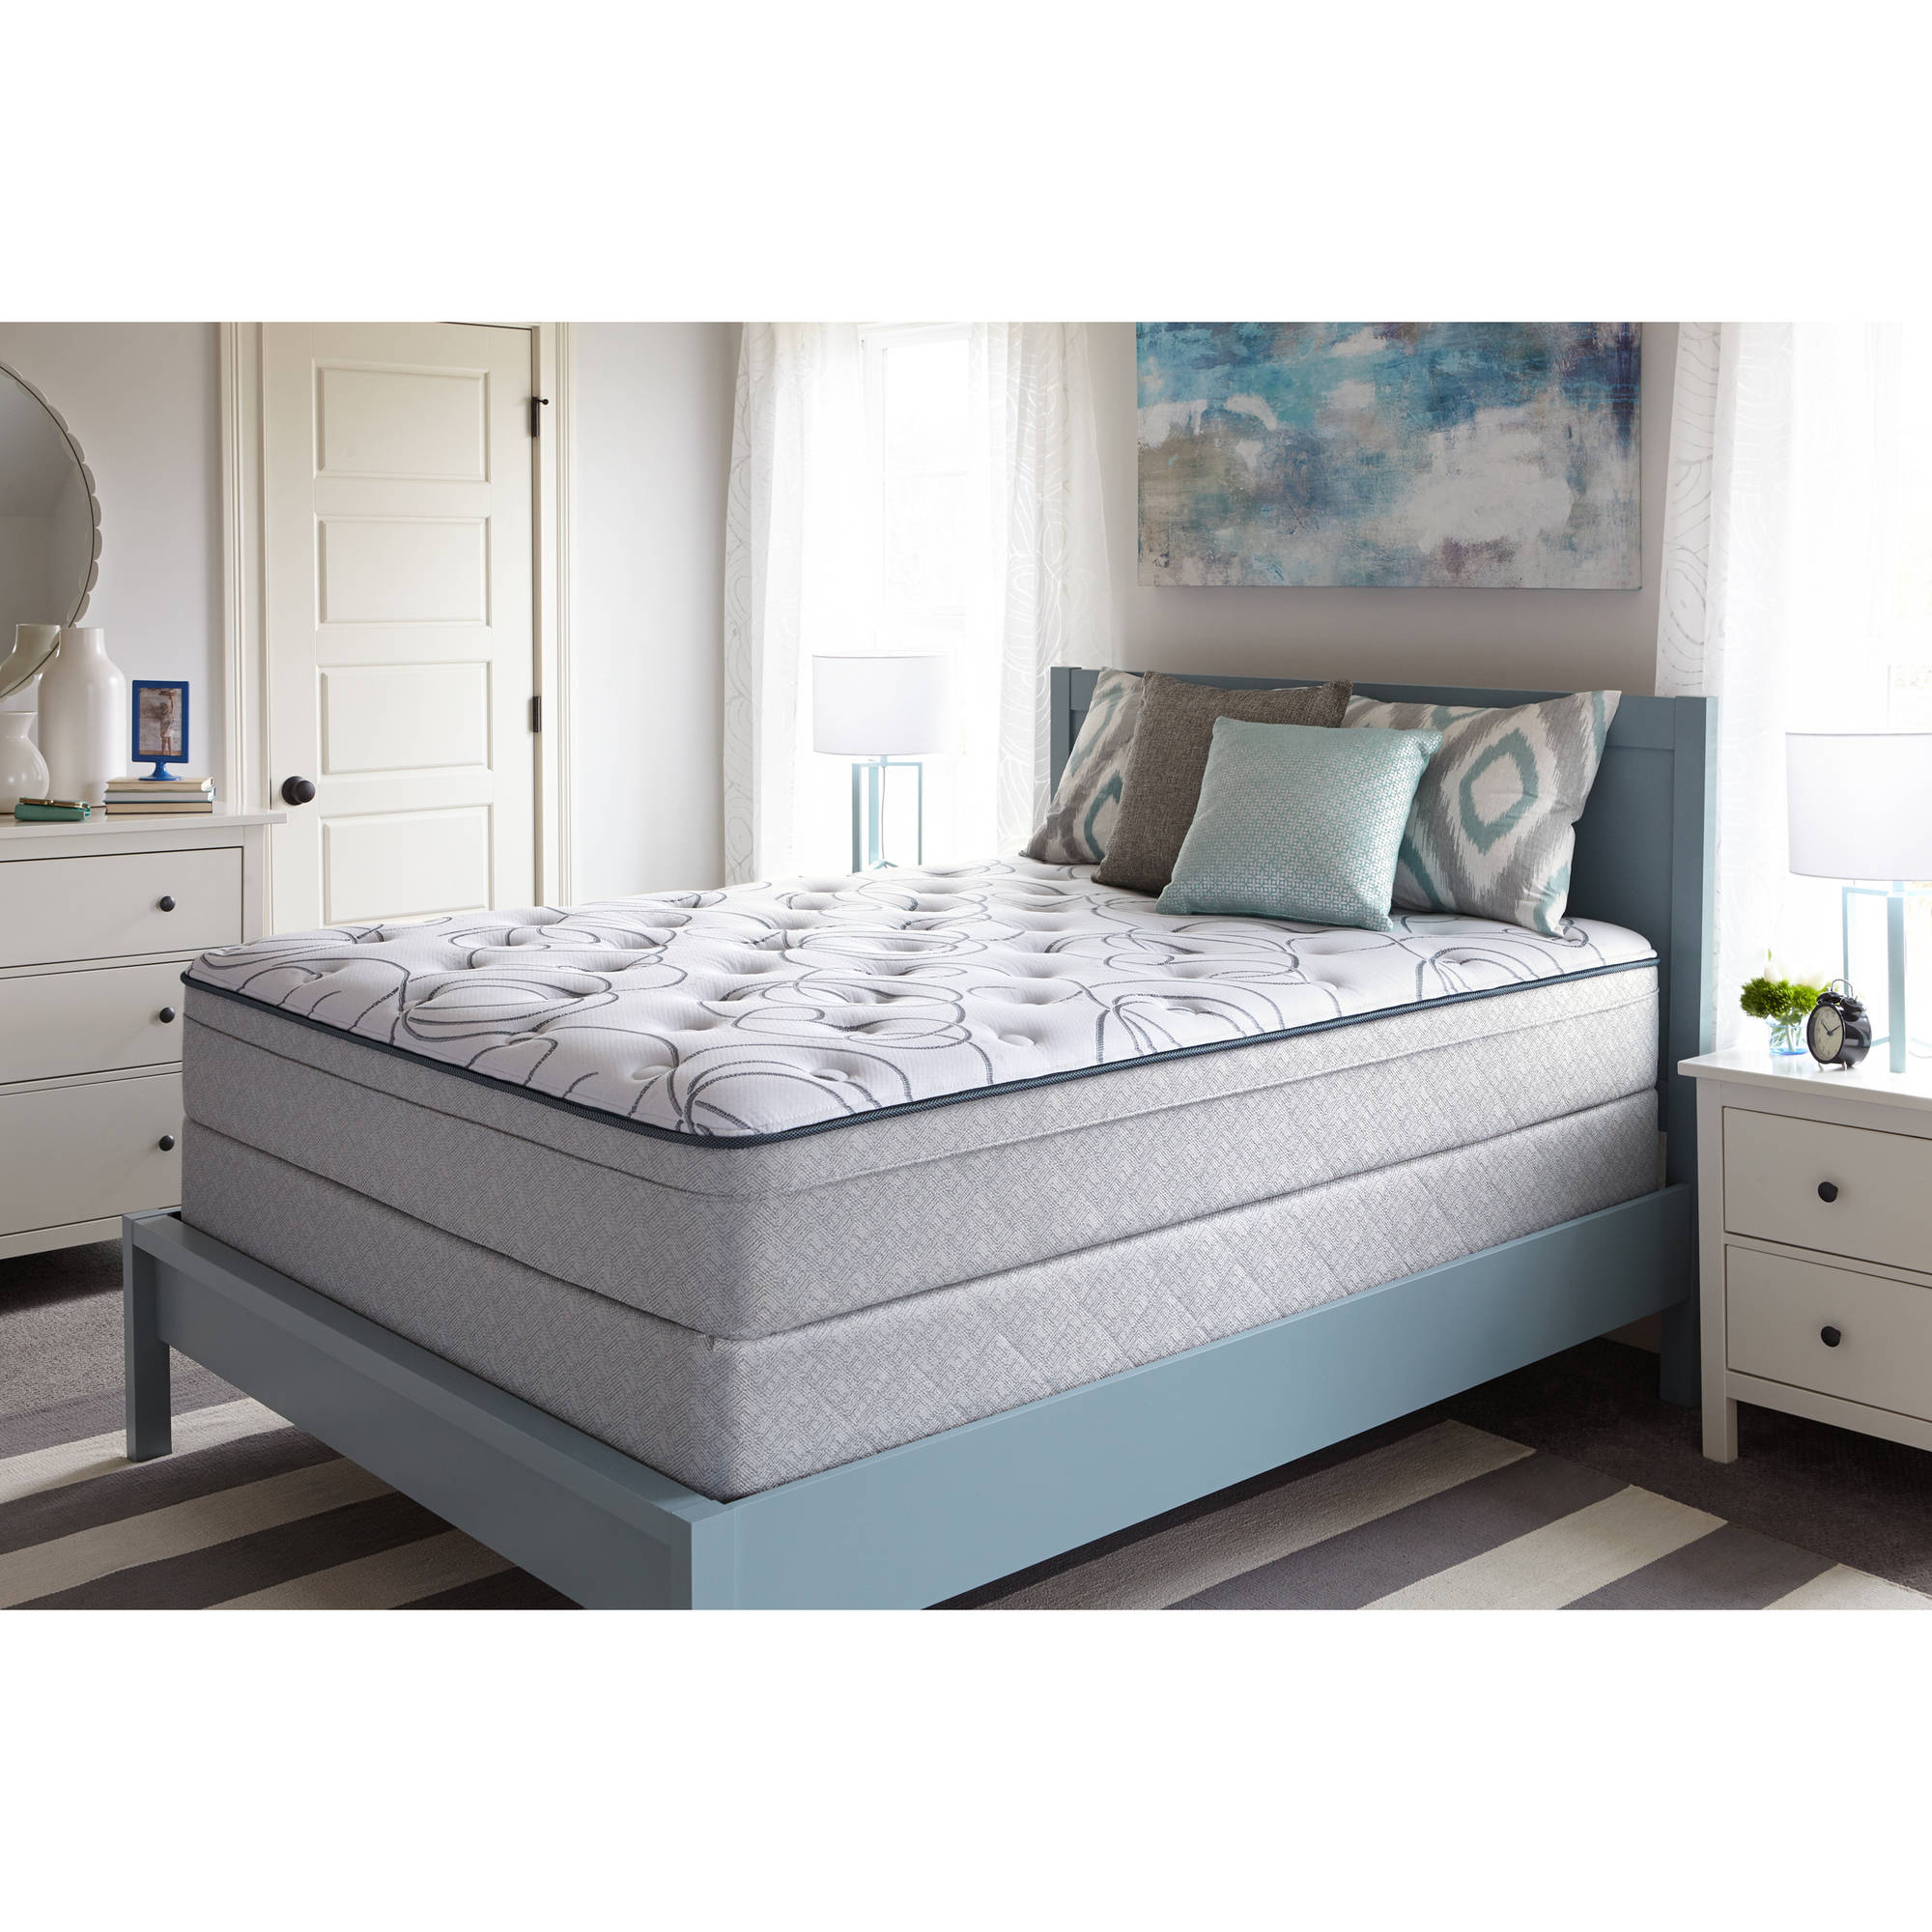 mattress dior by posturepedic country mattresses sleep sealy set brand chill canada optimum